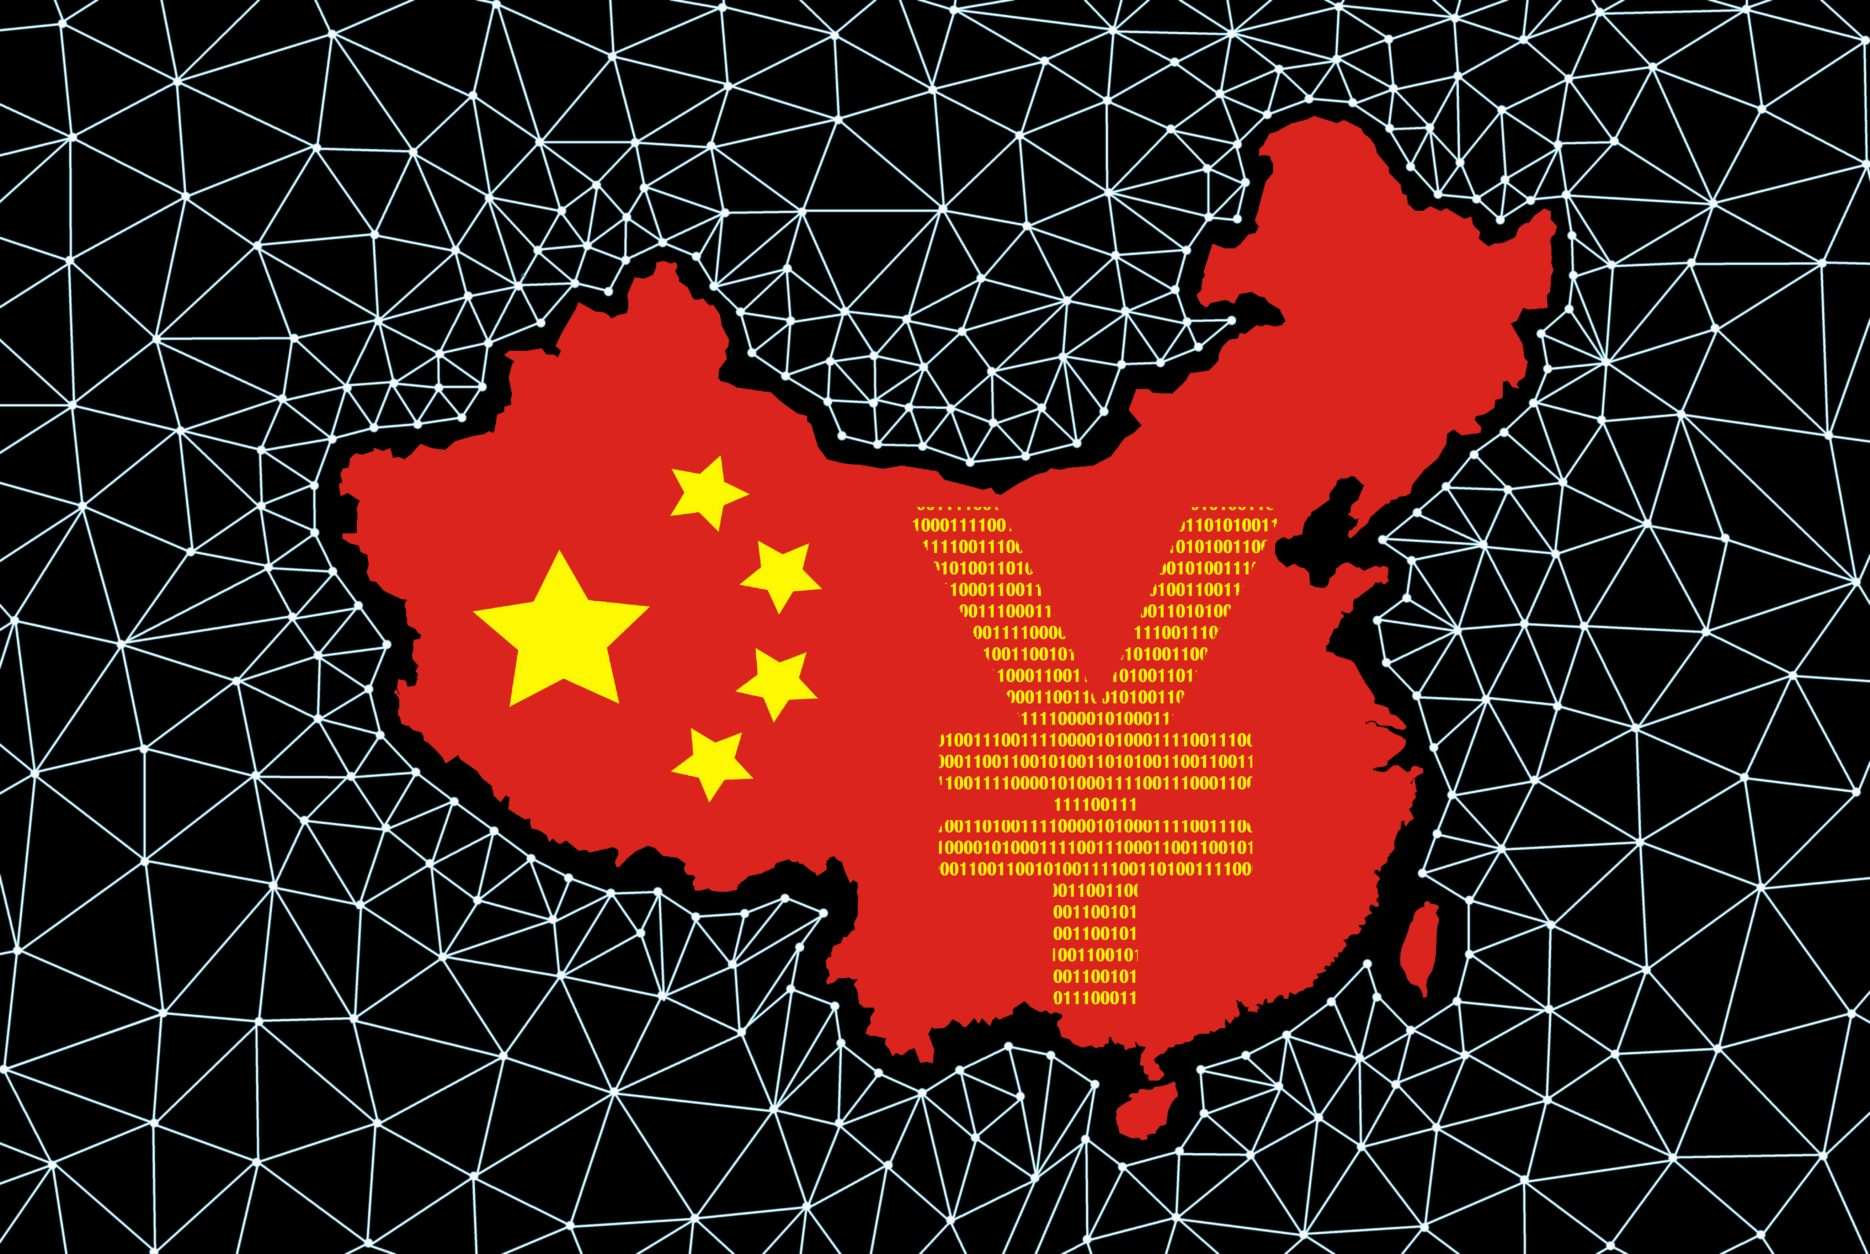 Developments in China's digital economy